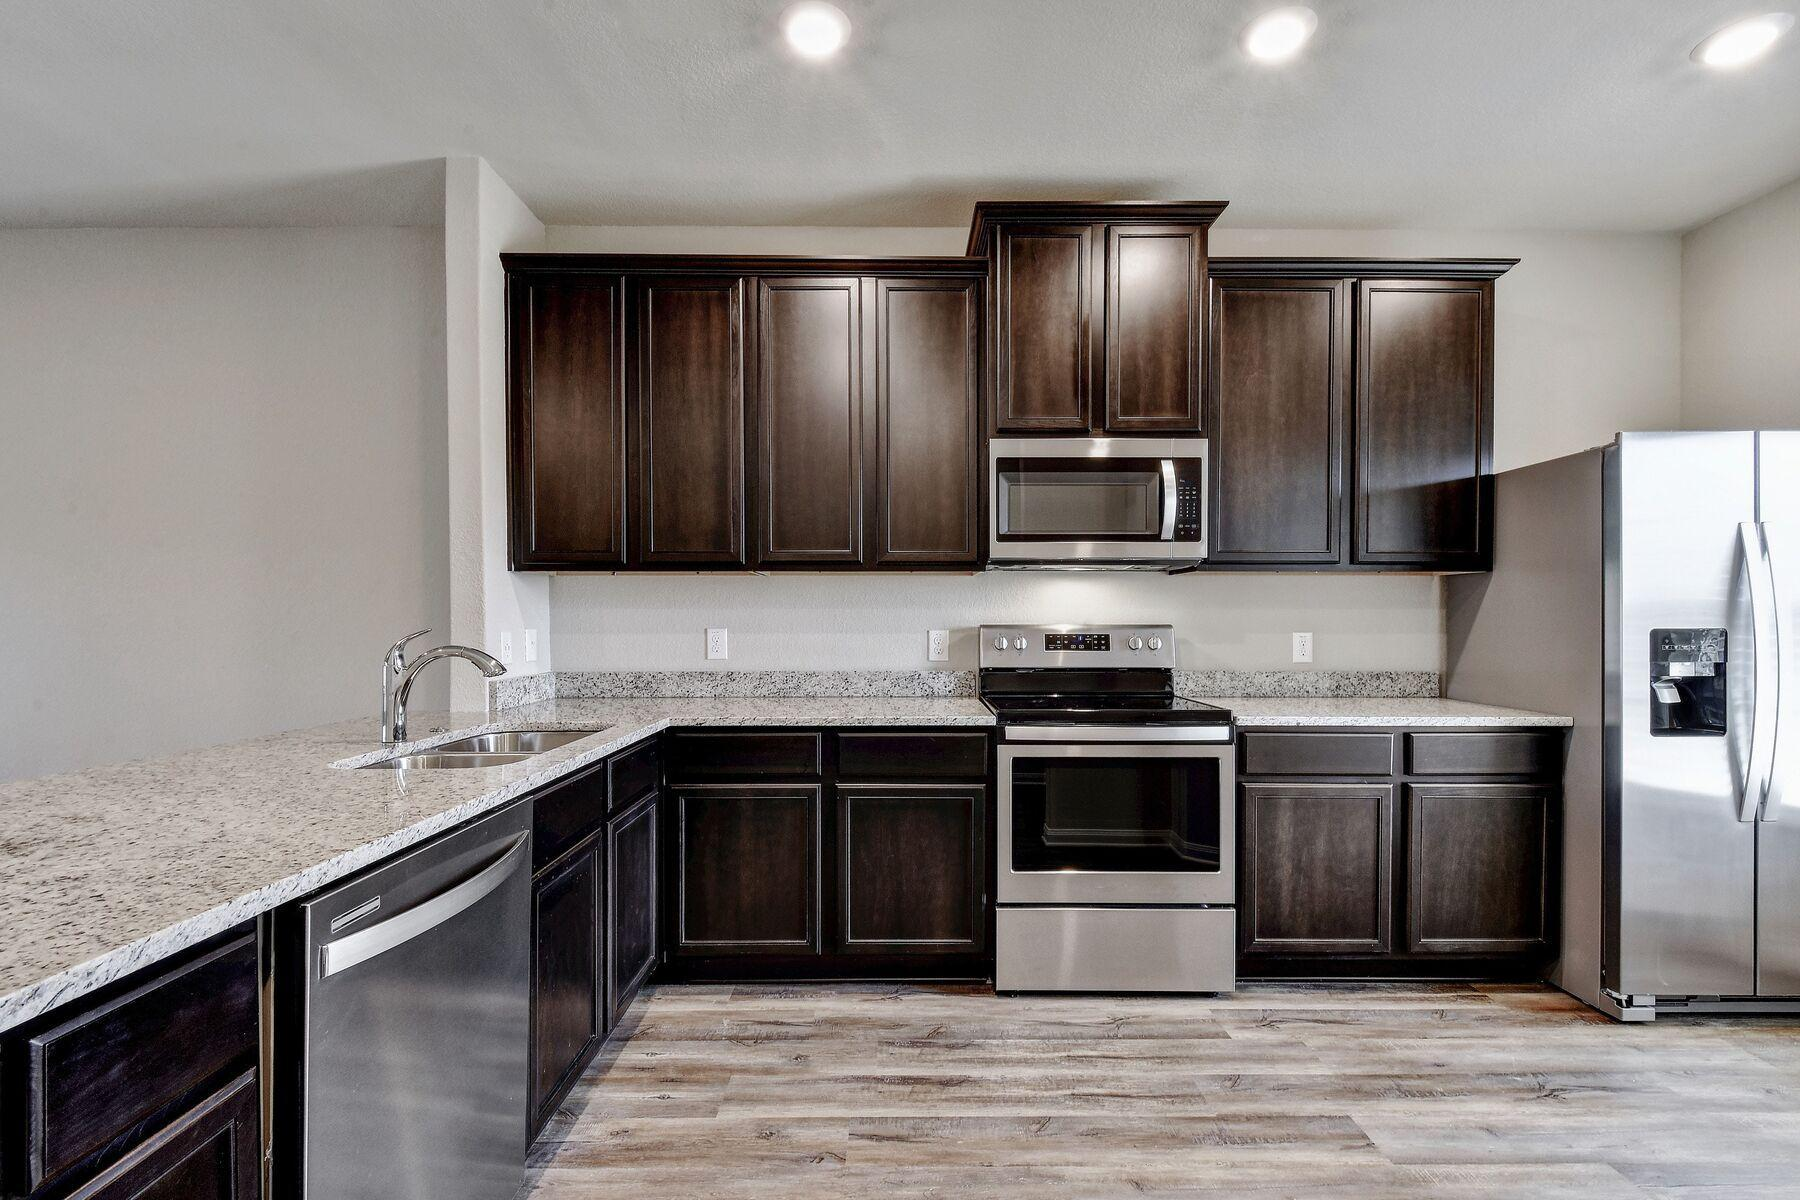 Kitchen featured in the Victoria By LGI Homes in Austin, TX